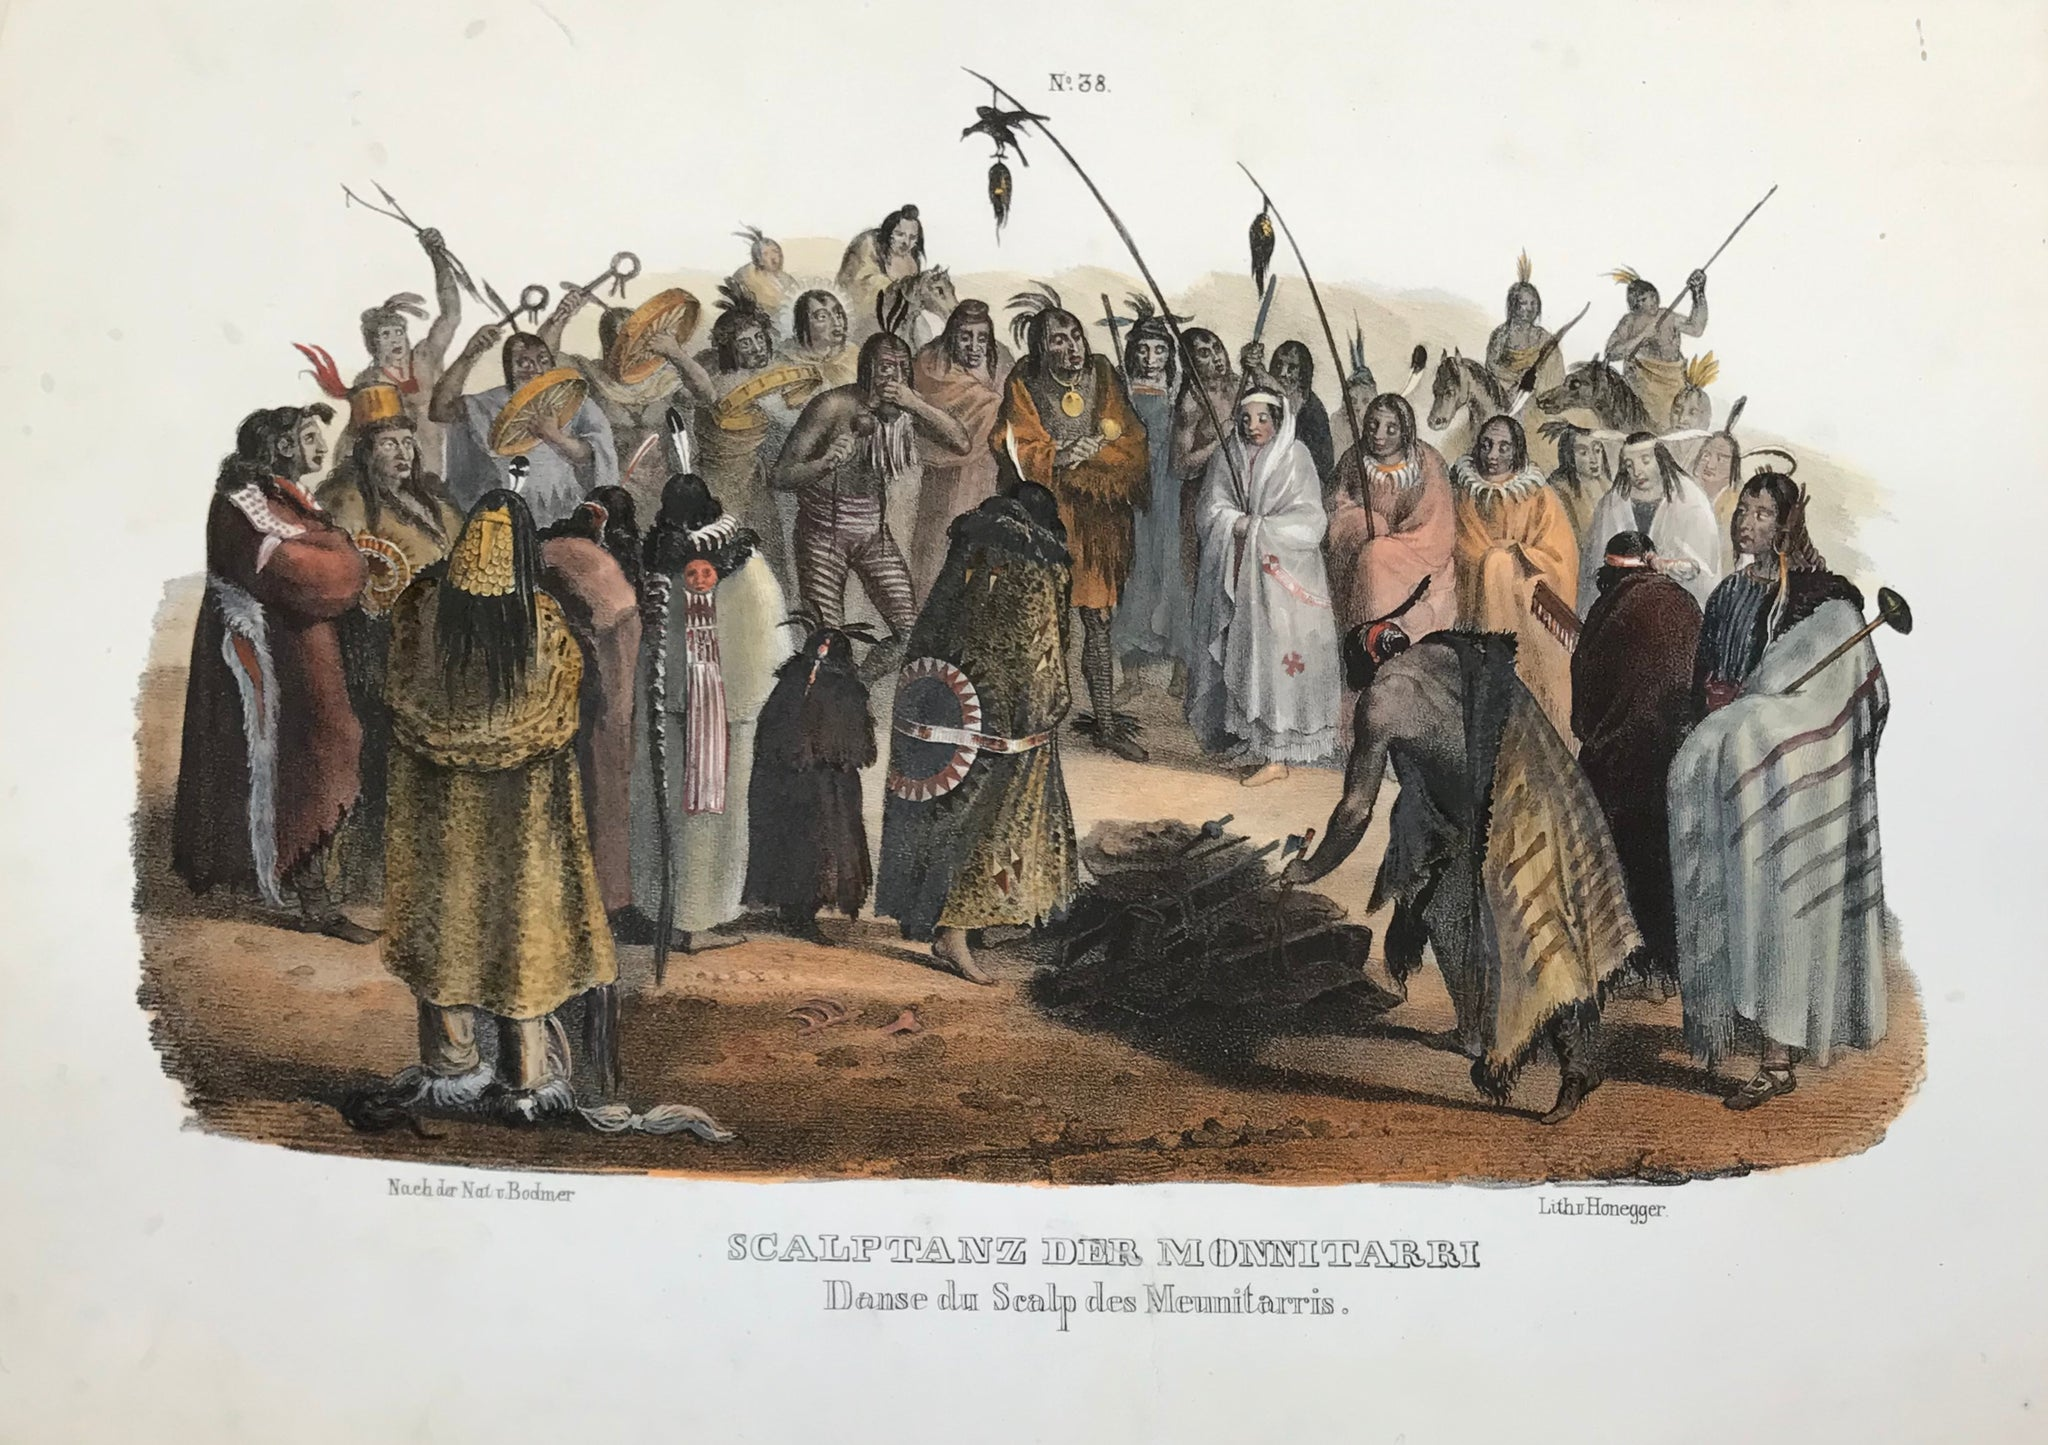 "The following lithographs of plains Indians and their culture were printed in  ""Naturgeschichte und Abbildungen des Menschen und der verschiedenen Rassen und Staemme nach den neuesten Entdeckungen und vorzueglichsten OriginalenÉ""  by Heinrich Rudolf Schinz (1777-1861).  These lithographs of Native Americans were done by  the lithographer J. Honegger  after  Johann Carl Bodmer (1809-1893), who had traveled in America together with  Prince Maximilian Alexander Philipp zu Wied-Neuwied (1782-1867) from 1832-34."